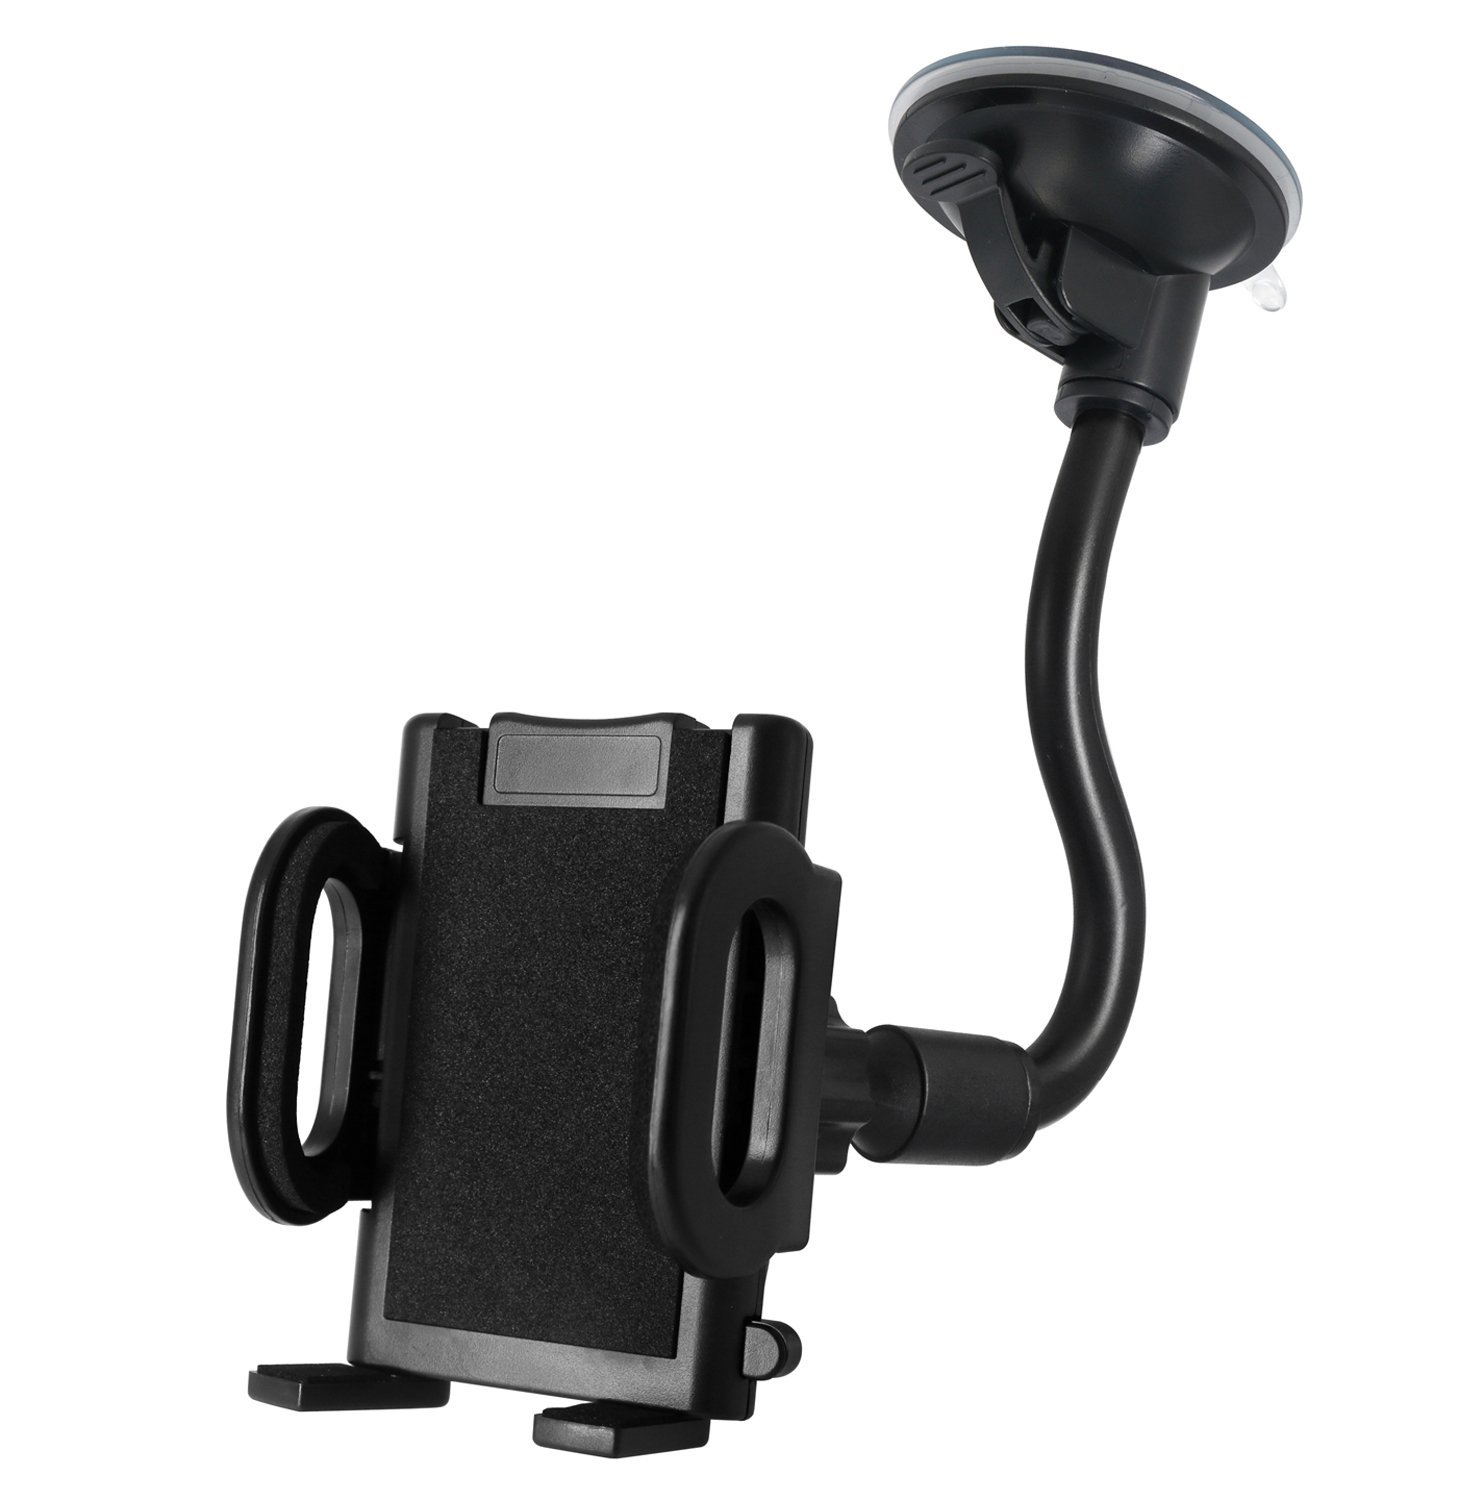 Car Mount X-AUTO One Touch Flexible Arm Universal Windshield Cell Phone Holder with Strong Suction Cup and Three Side Grips for Cell Phone iPhone Smartphones Android GPS Devices and More 4326588968